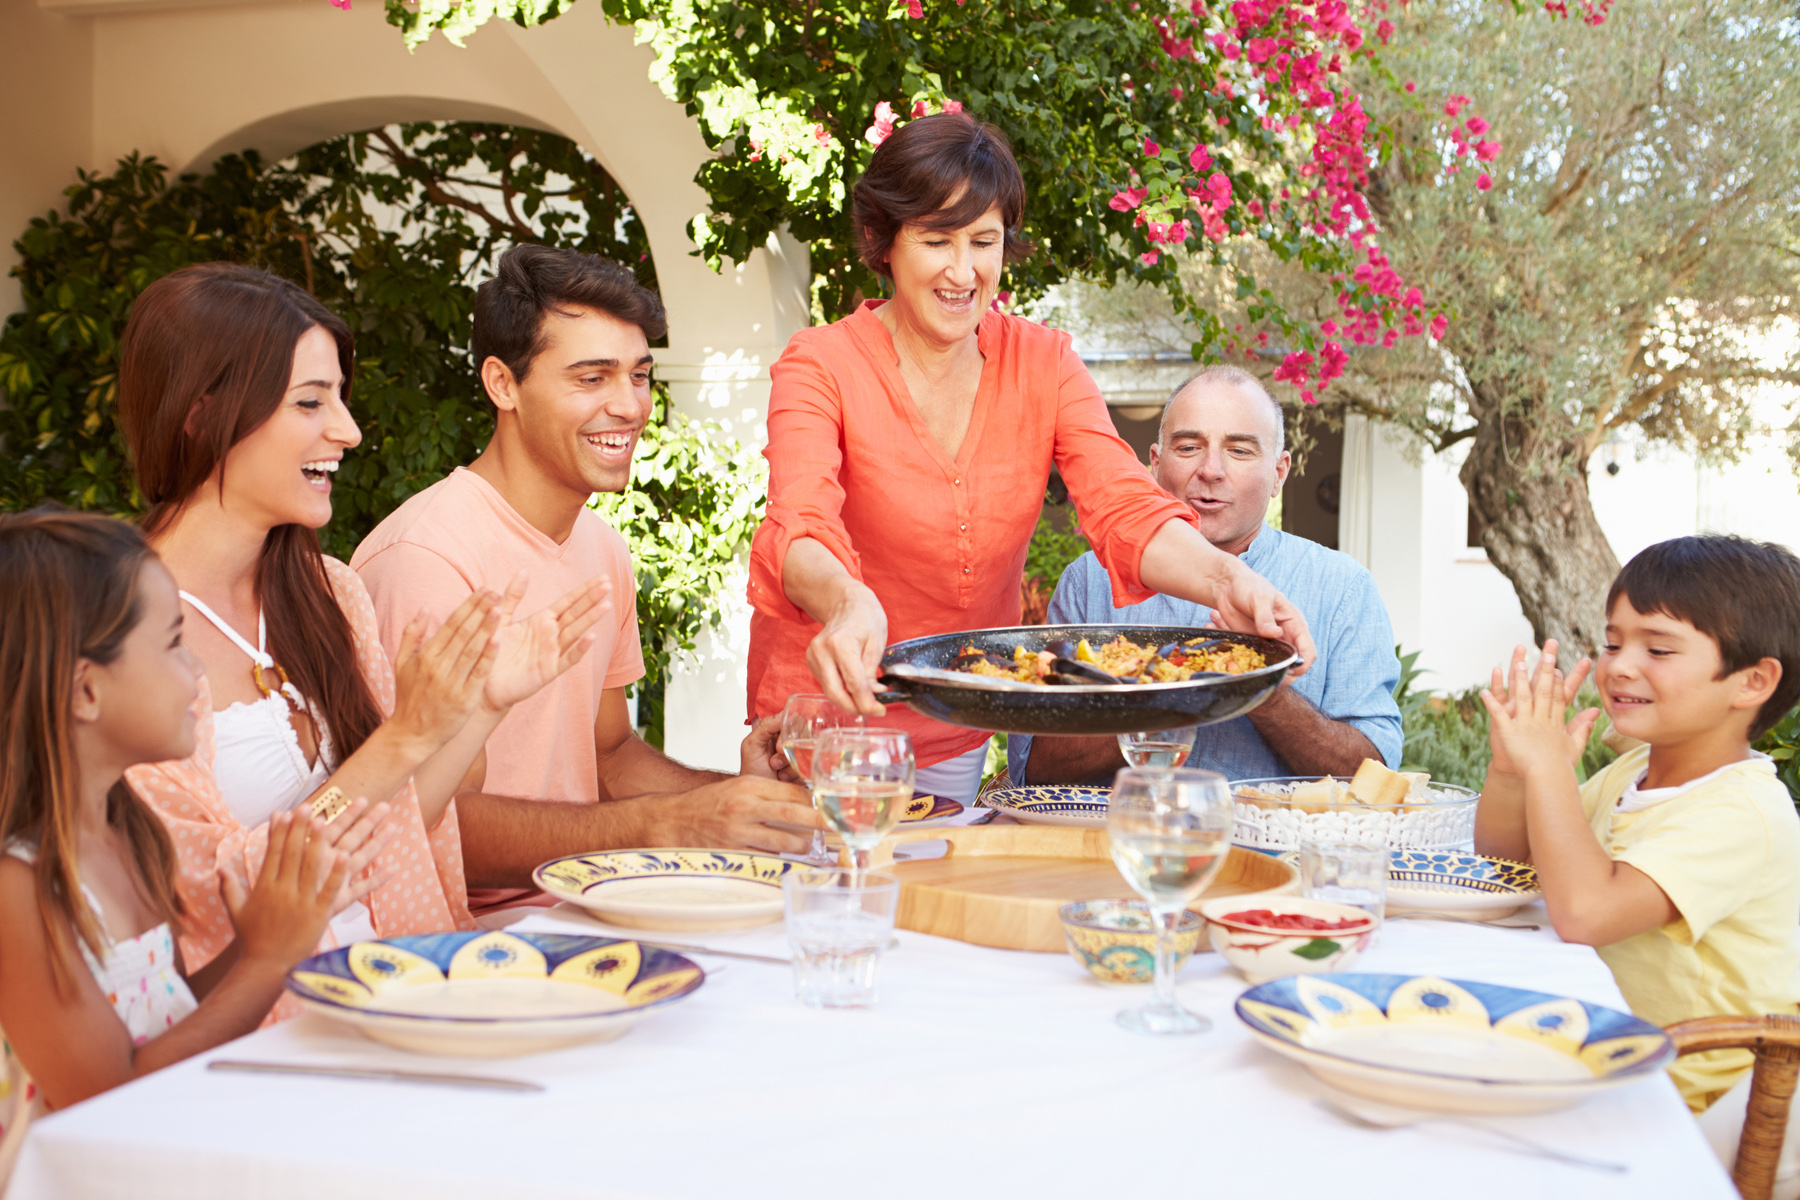 Spanish family eating paella together